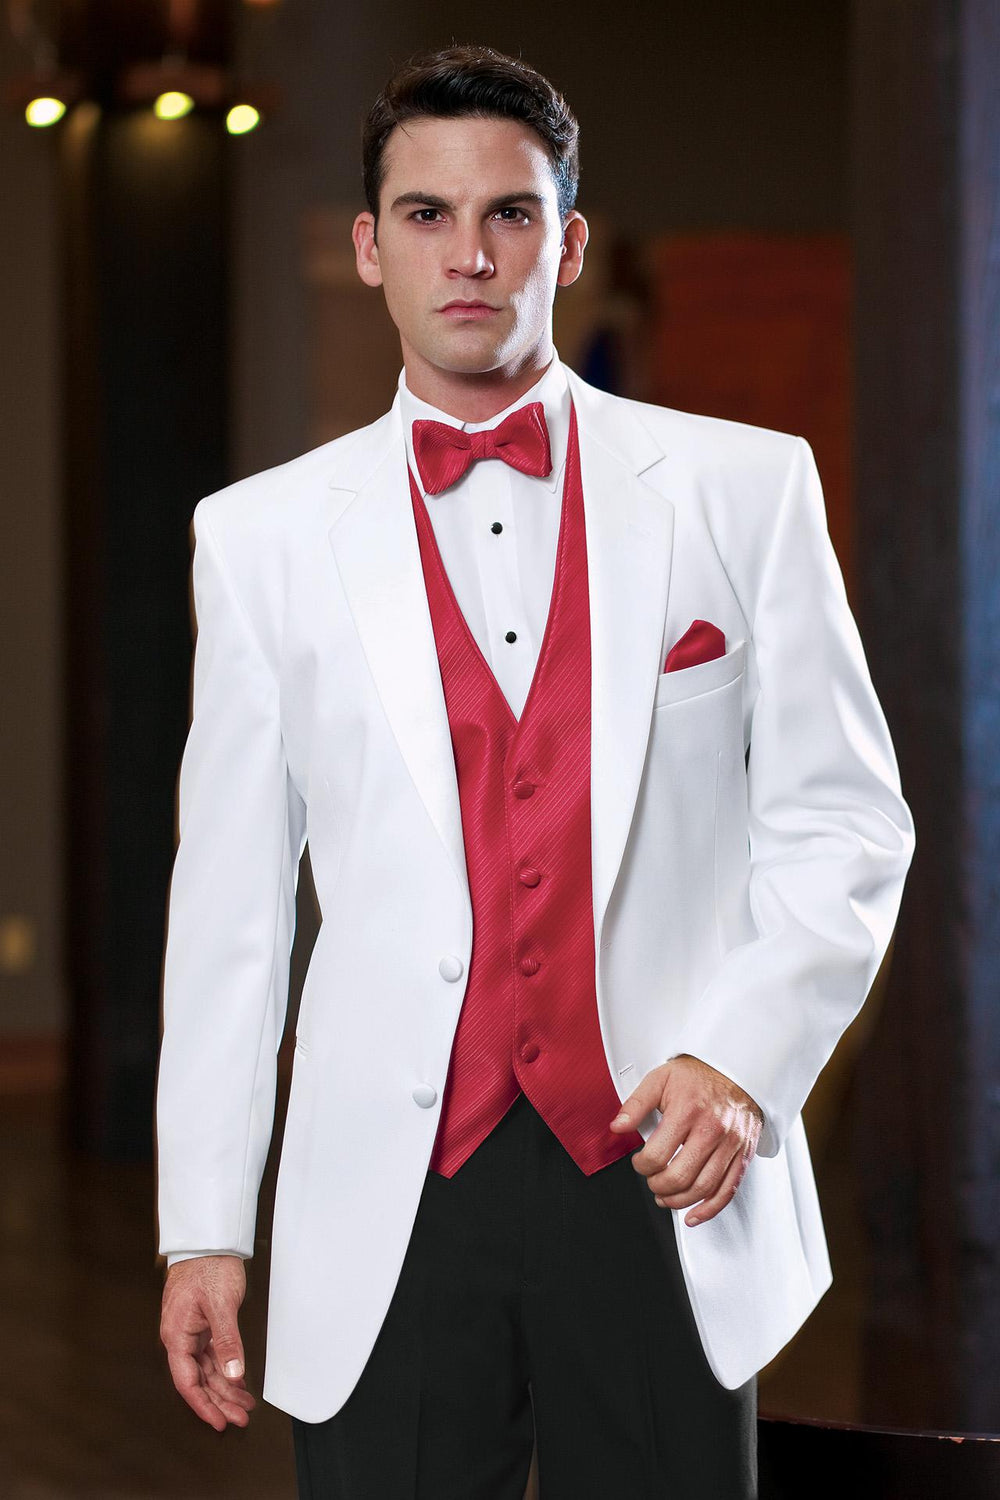 085663975377b8 Tuxedo Rental in White for Wedding, Prom or Formal Occassion – Creative  Living Today